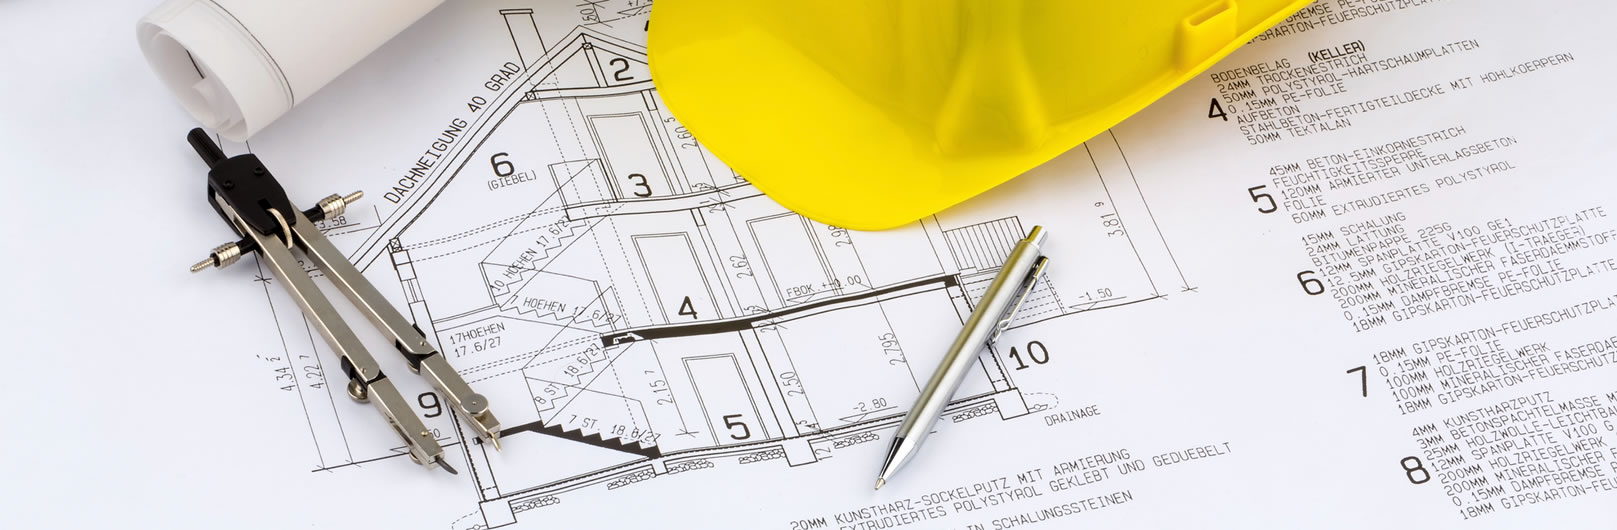 Building plans on a table with pen